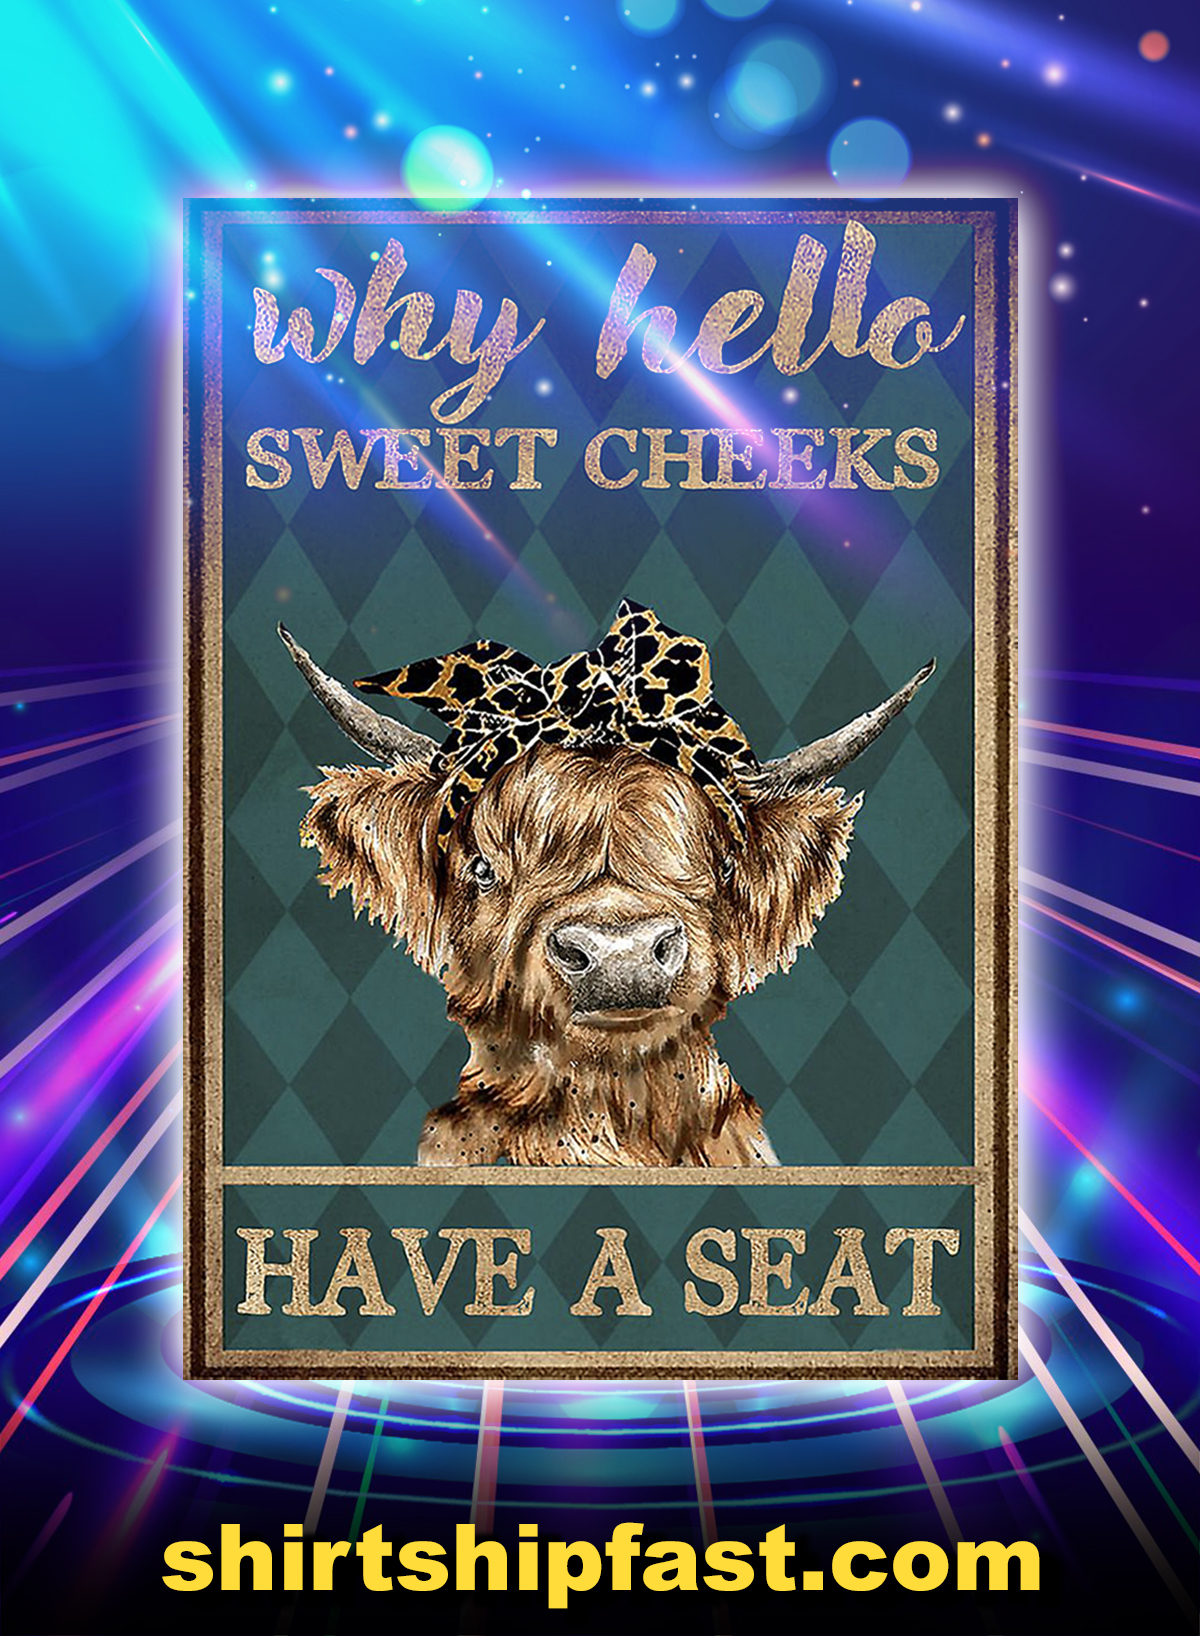 Cow highland cattle why hello sweet cheeks have a seat poster - A1